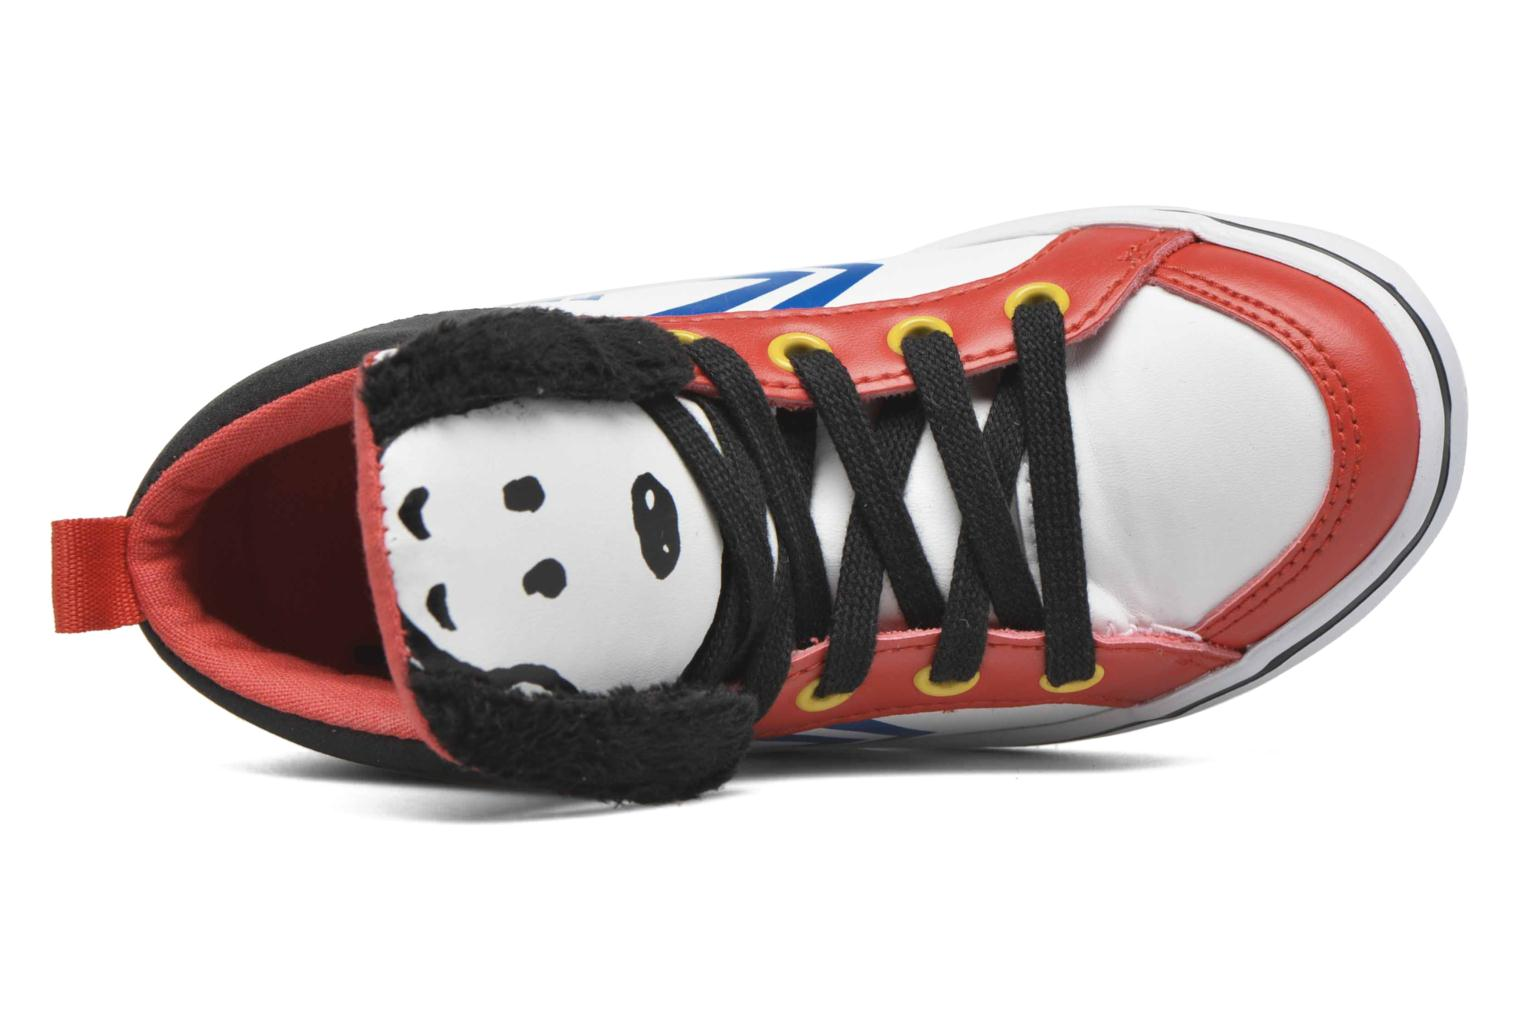 Delta Mid Peanuts Snoopy/White Smooth